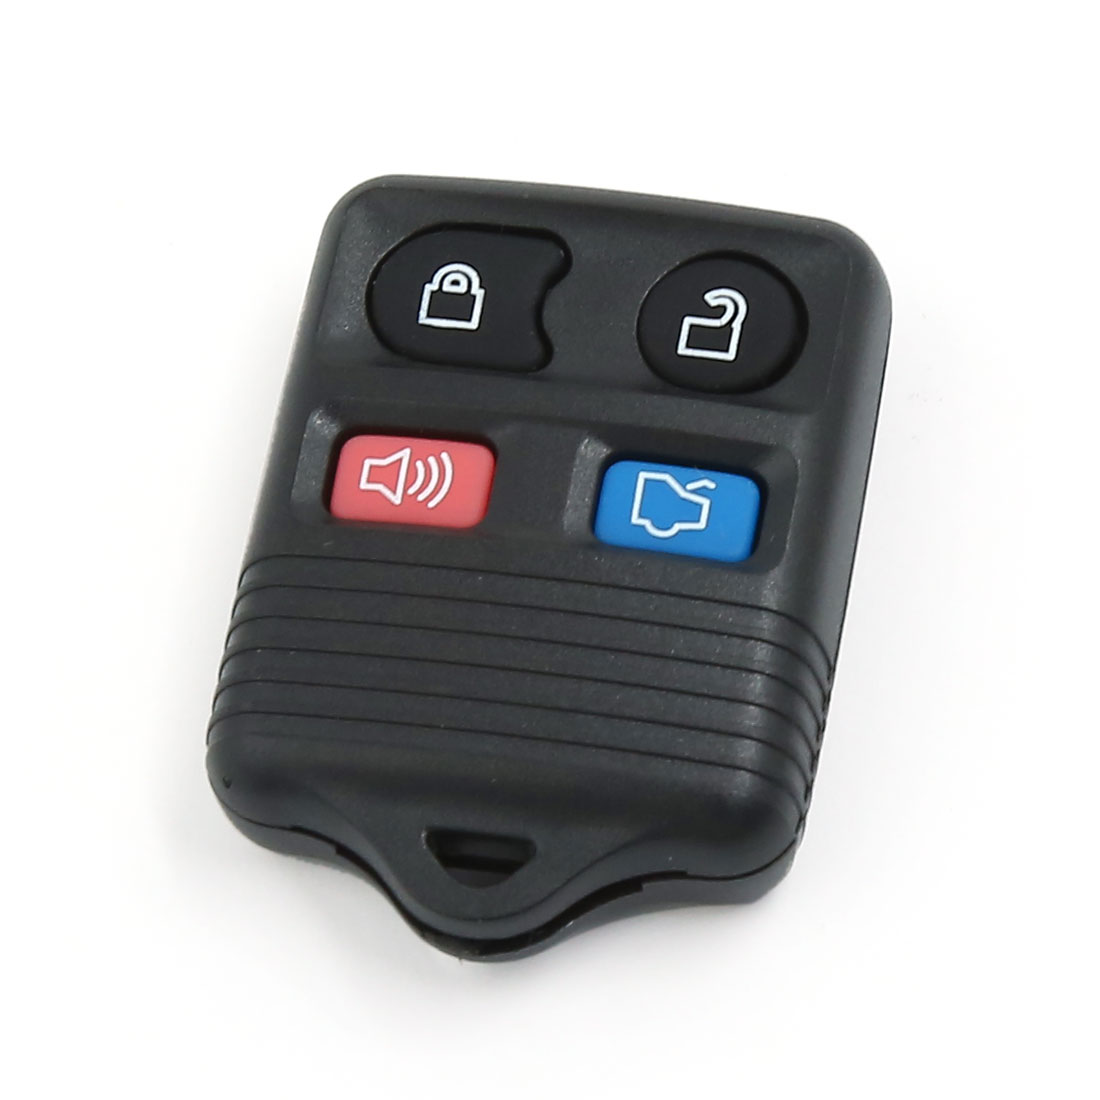 New Replacement Light Keyless Entry Car Remote Key Fob for Ford CWTWB1U345